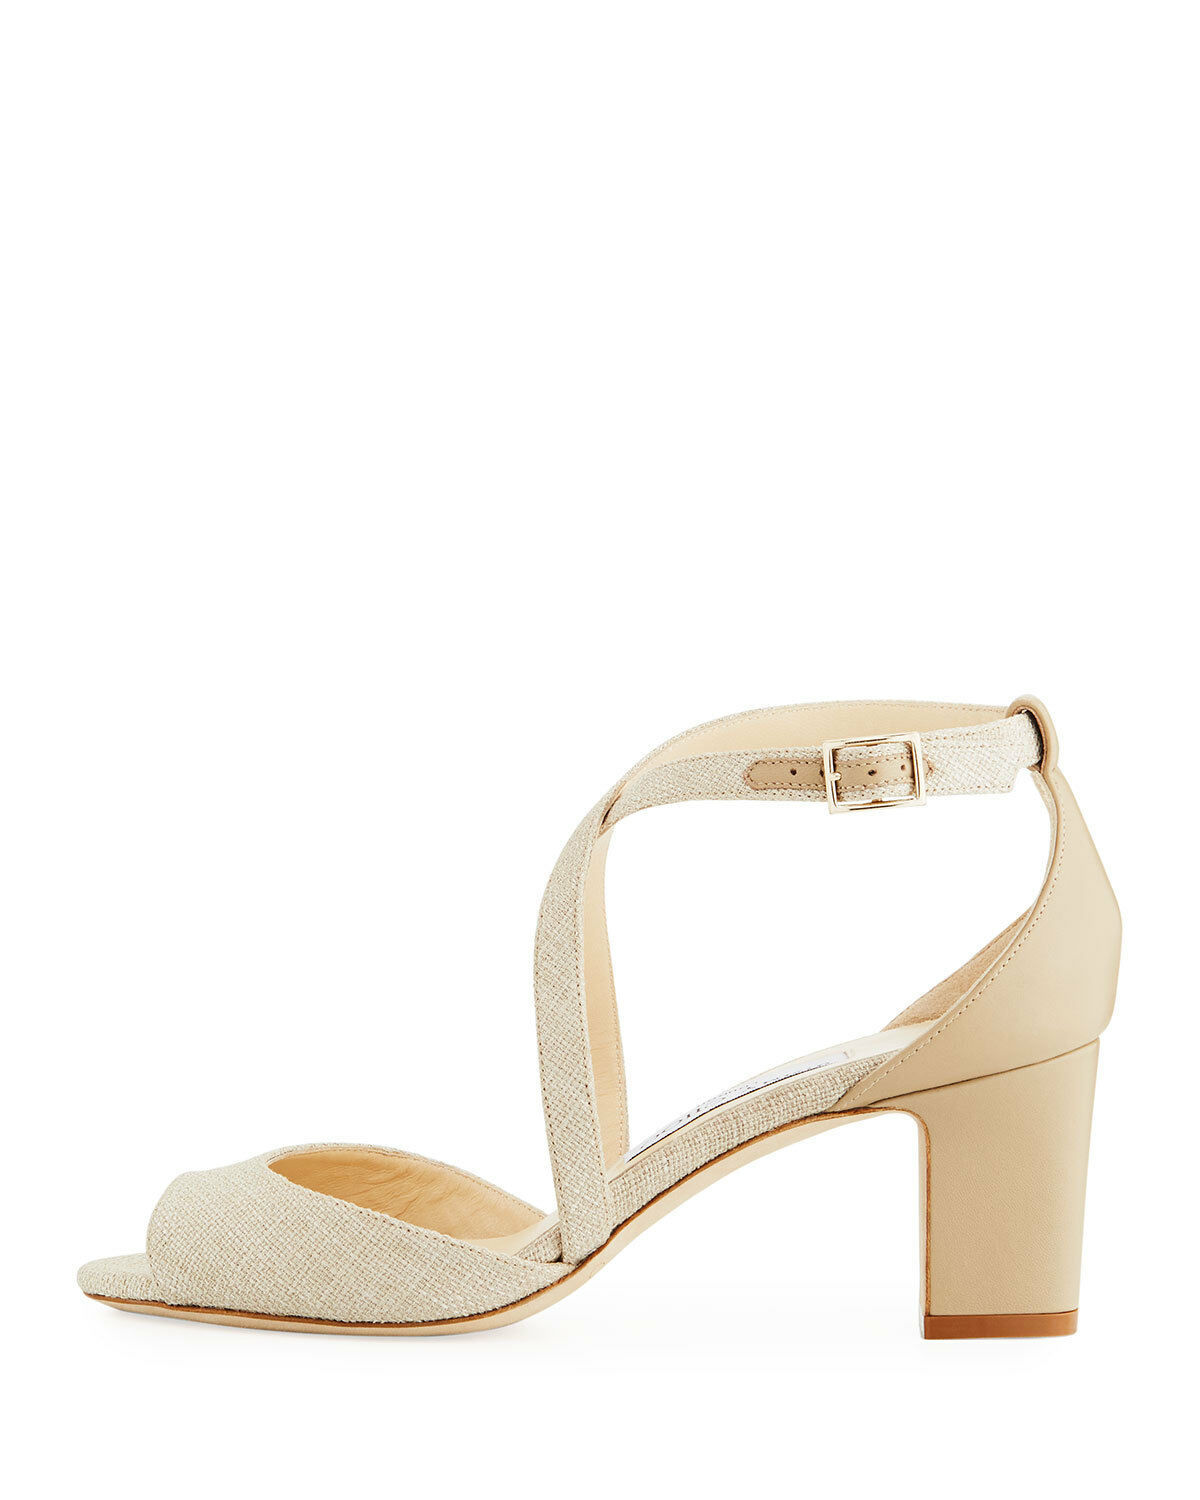 Jimmy Choo Carrie Canvas 65mm Sandals  $695.00 Size 36